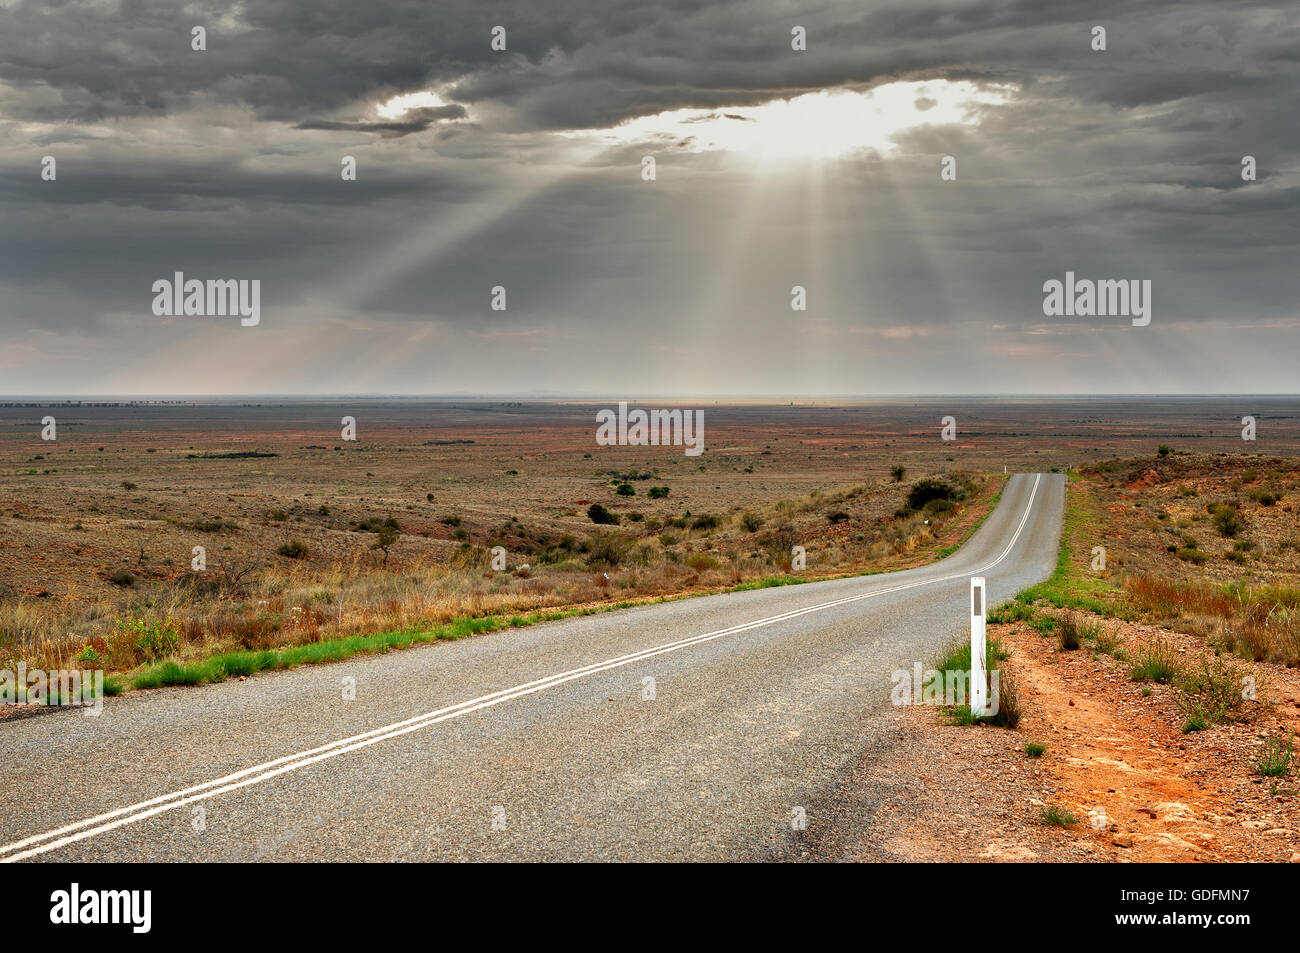 It seems to be the road to nowhere, but it is the road to Mundi Mundi Plain. - Stock Image